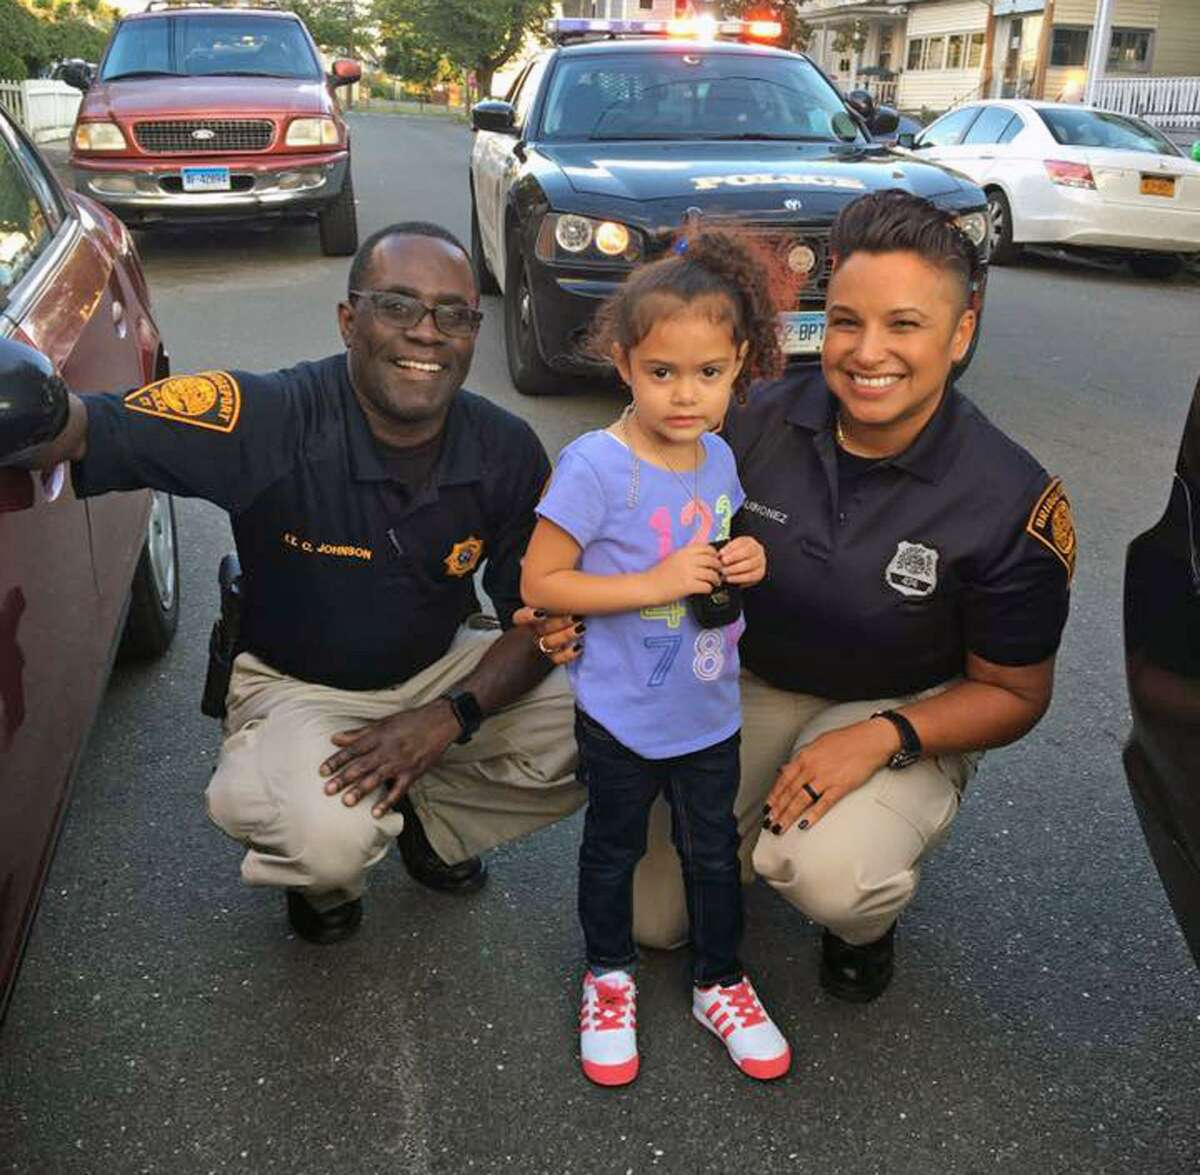 Bridgeport police officers visited Bridgeport resident Saydie Ramos on Sept. 7, 2017, to deliver a child's police uniform purchased by Ramos' father.